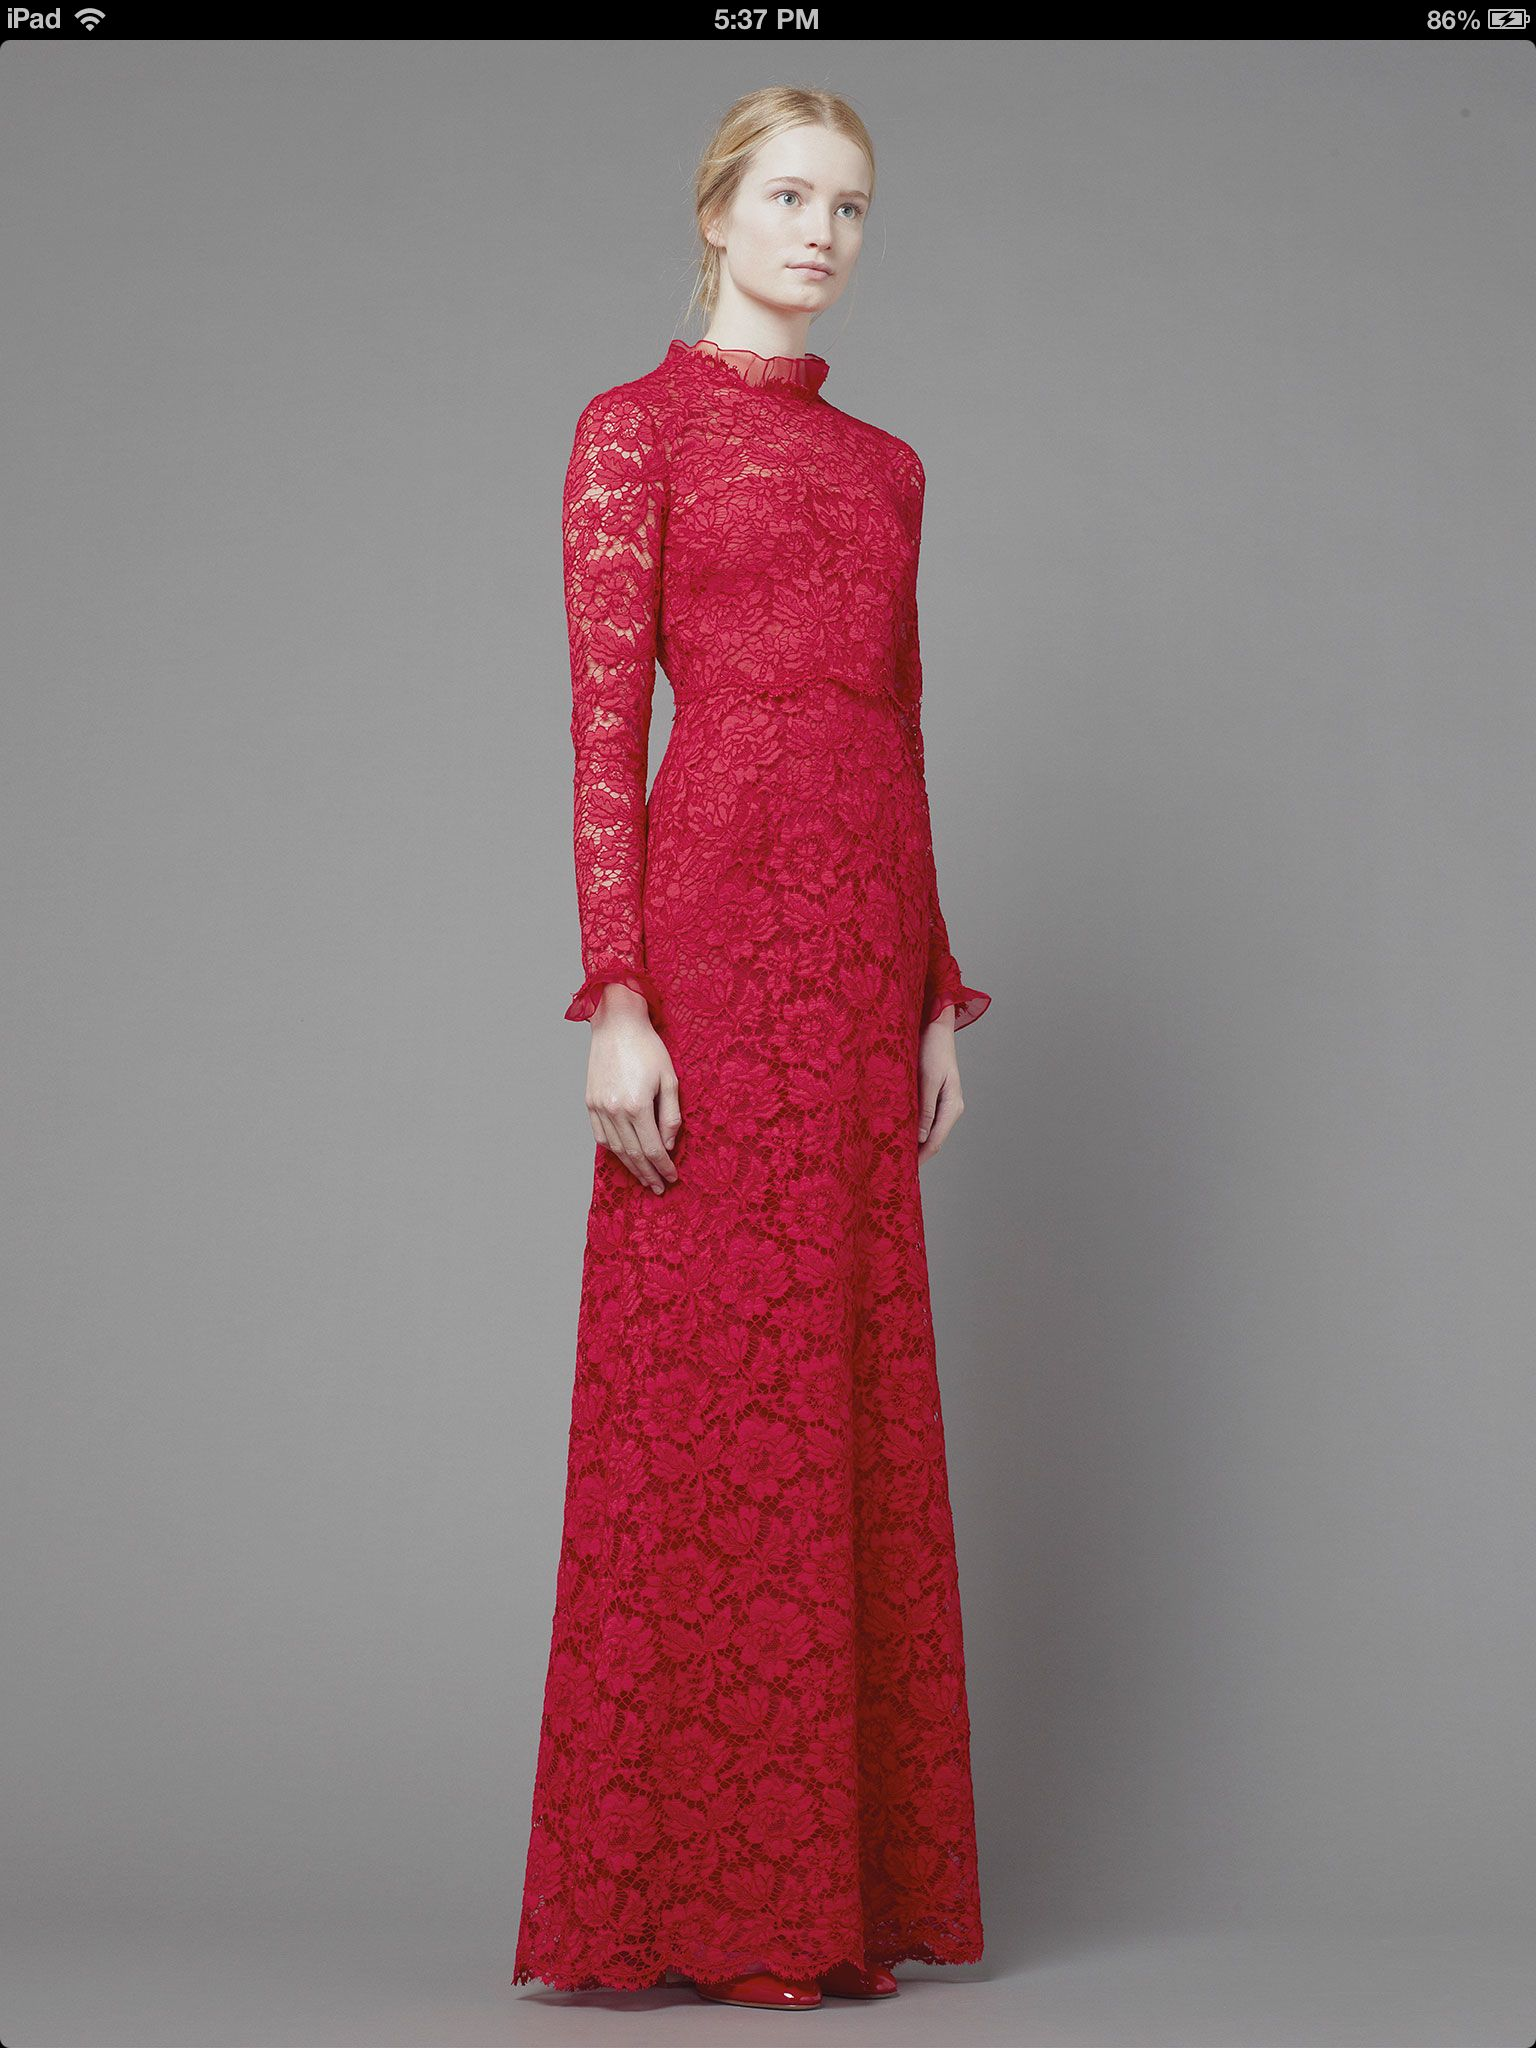 Valentino women's collection fall 2013